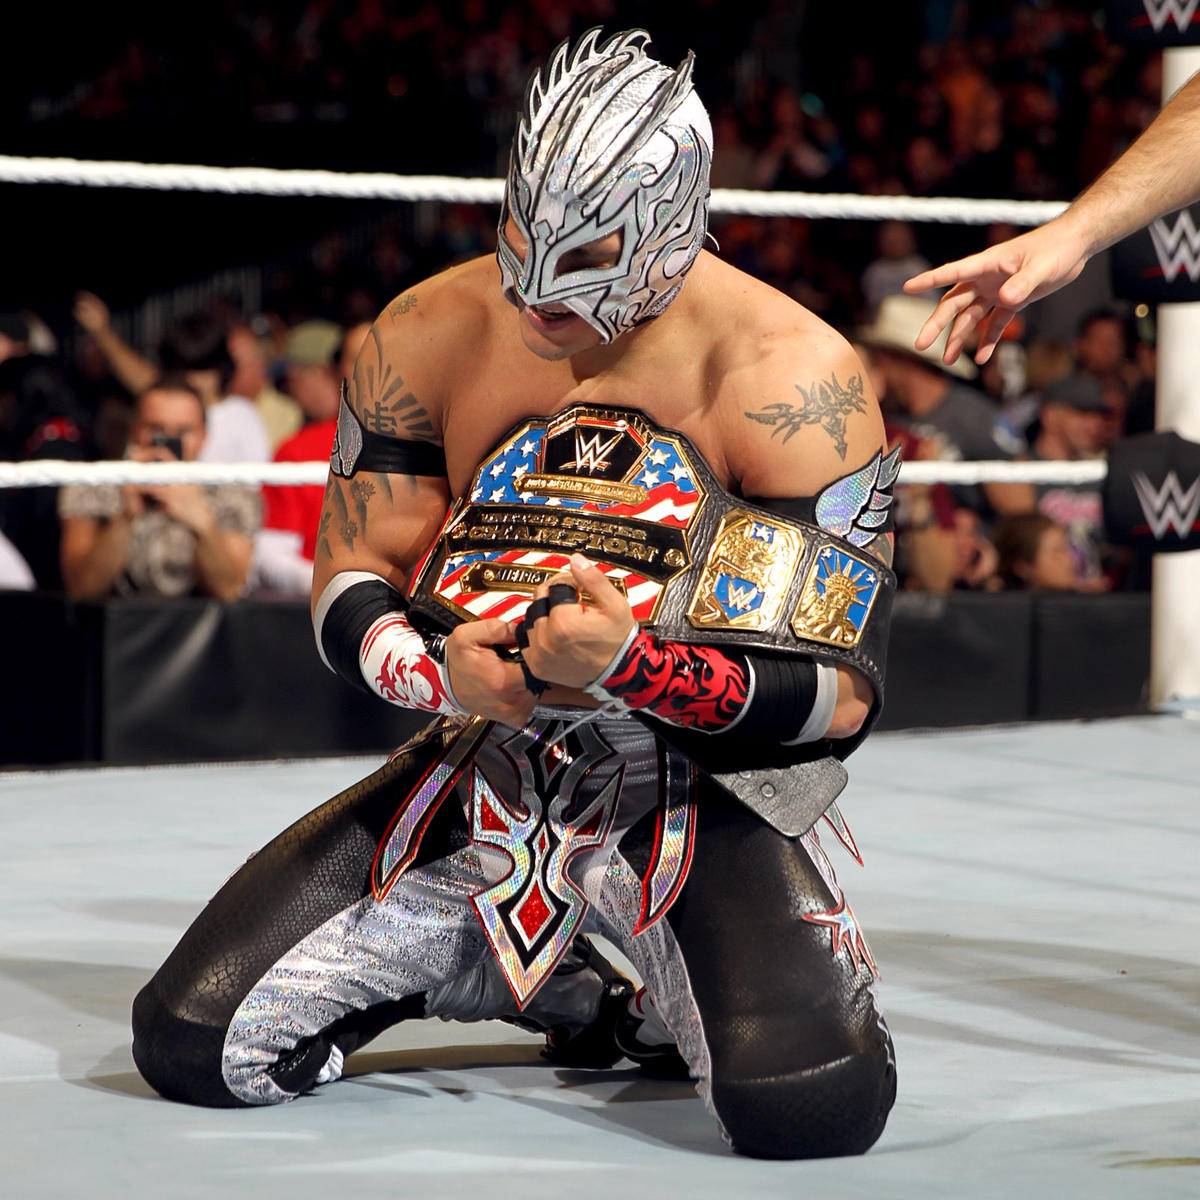 Eventually, Kalisto out flanks Del Rio, hitting Salida del Sol to reclaim the United States Championship.